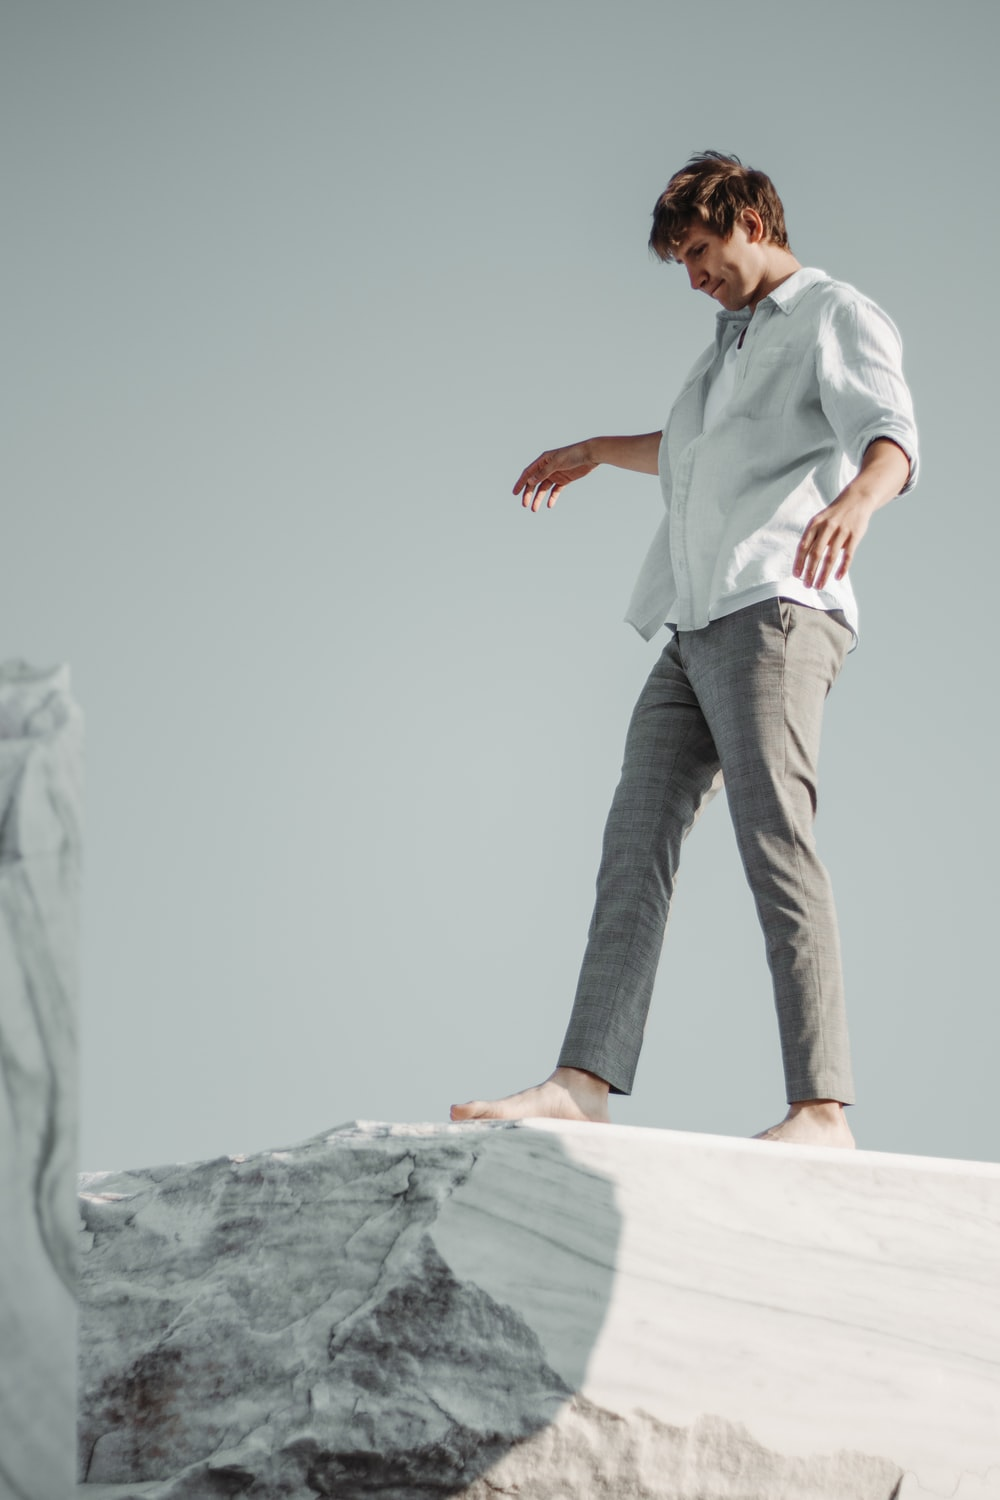 man in white button up shirt and gray denim jeans standing on gray rock